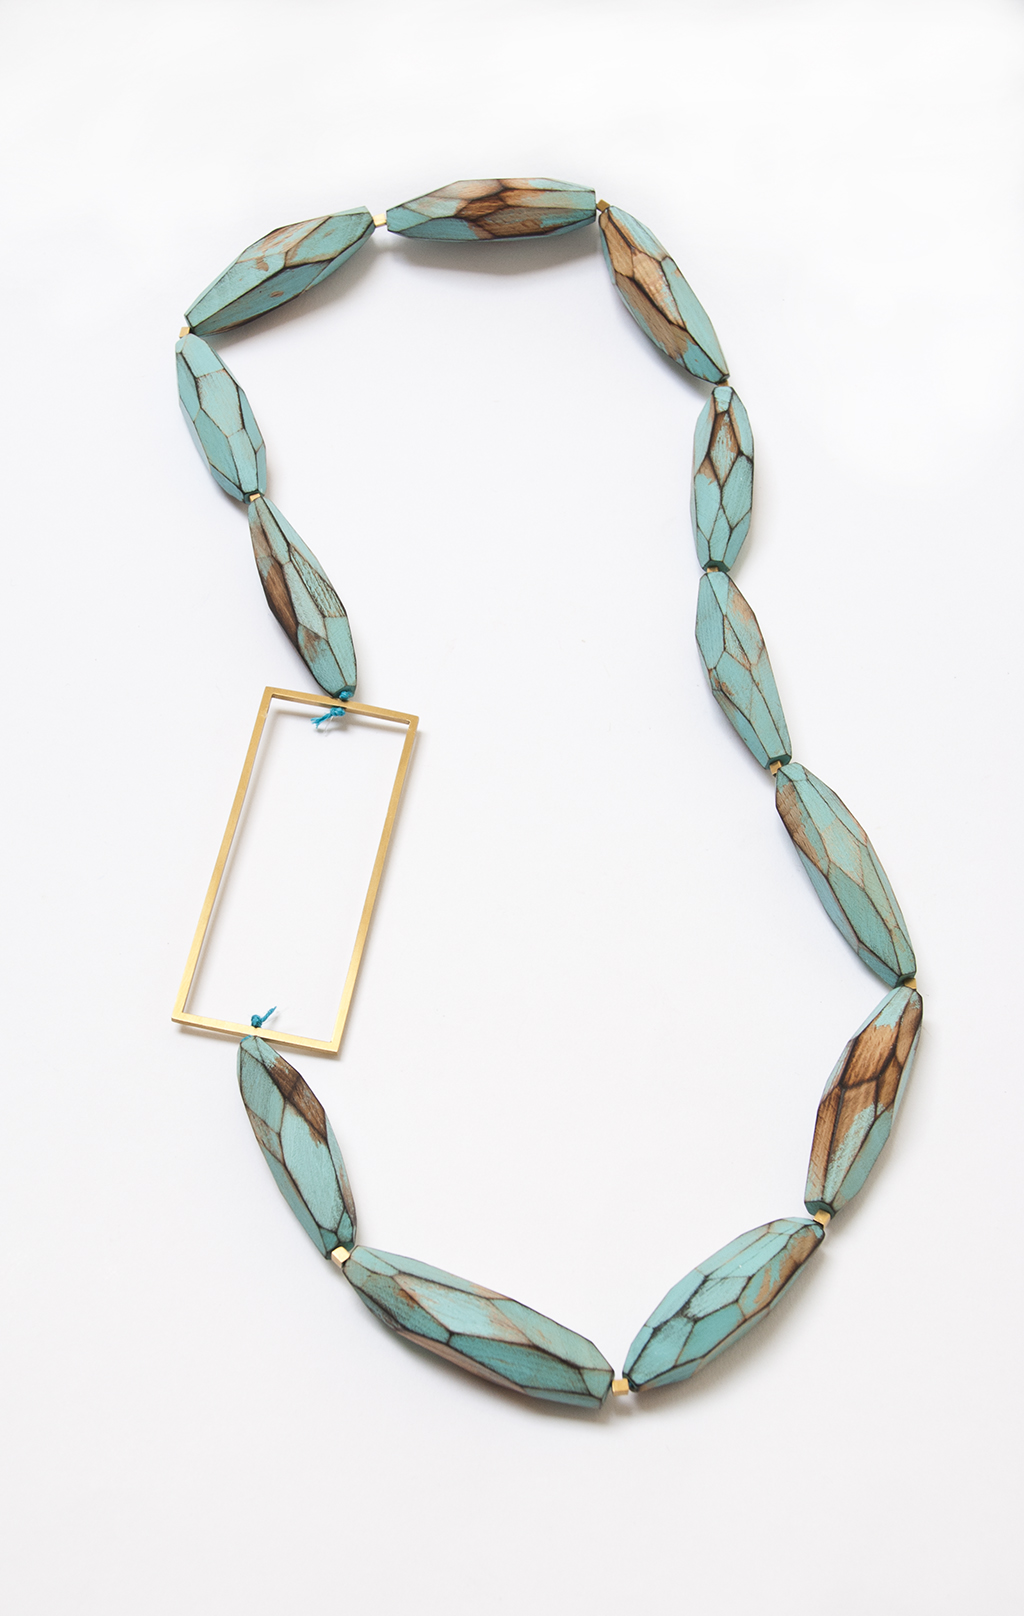 My Seoul turquoise necklace